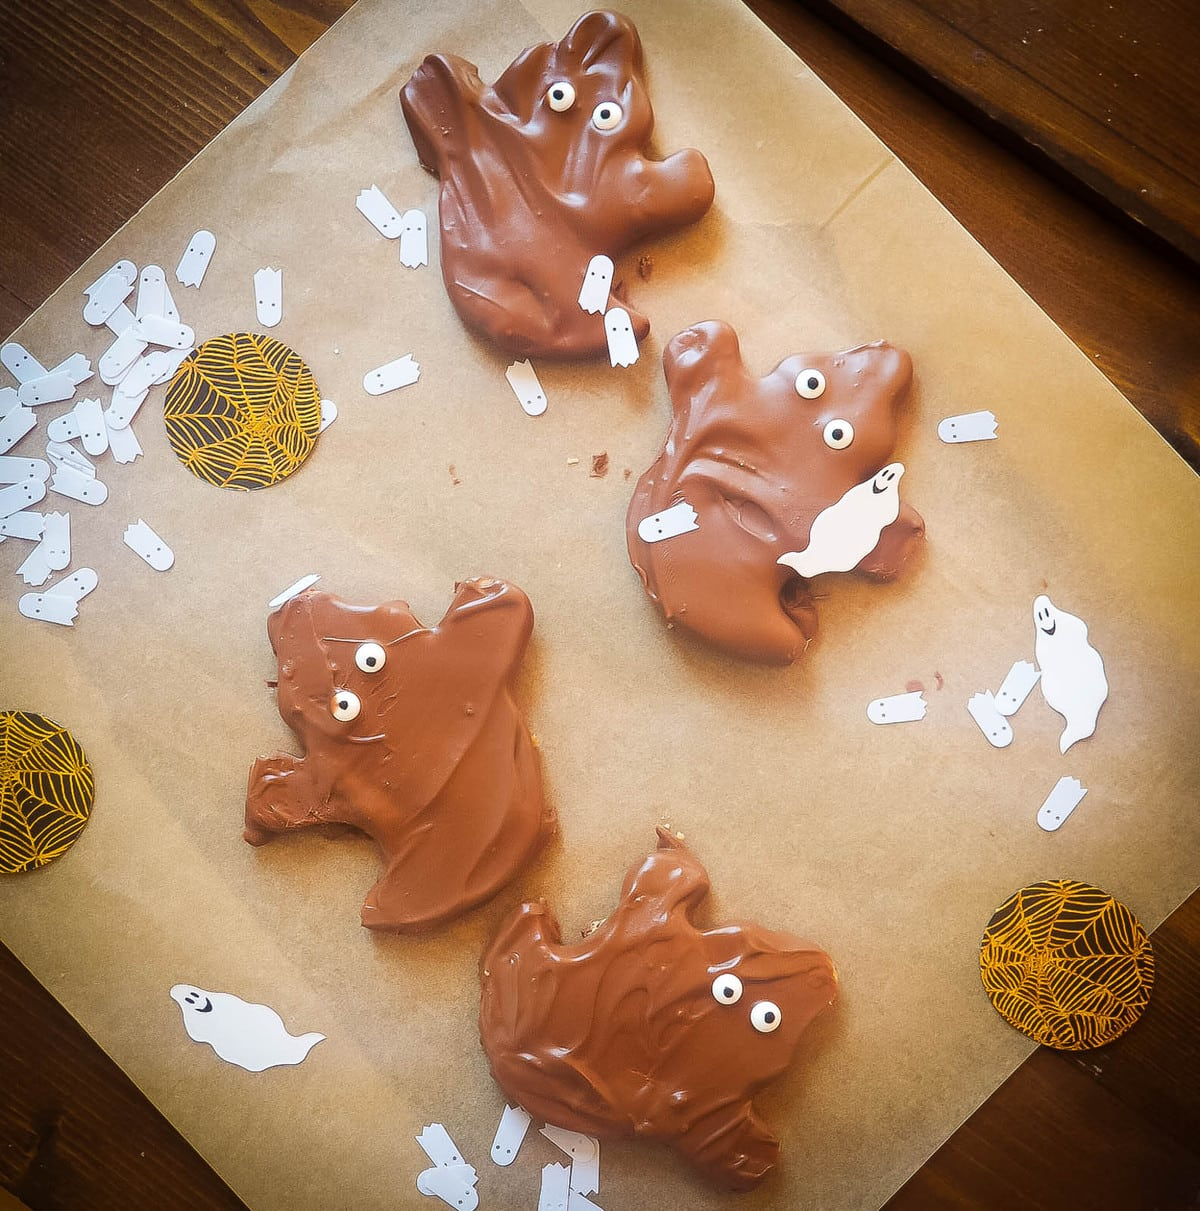 Four homemade Reese's peanut butter cup ghosts on brown parchment paper with Halloween confetti.